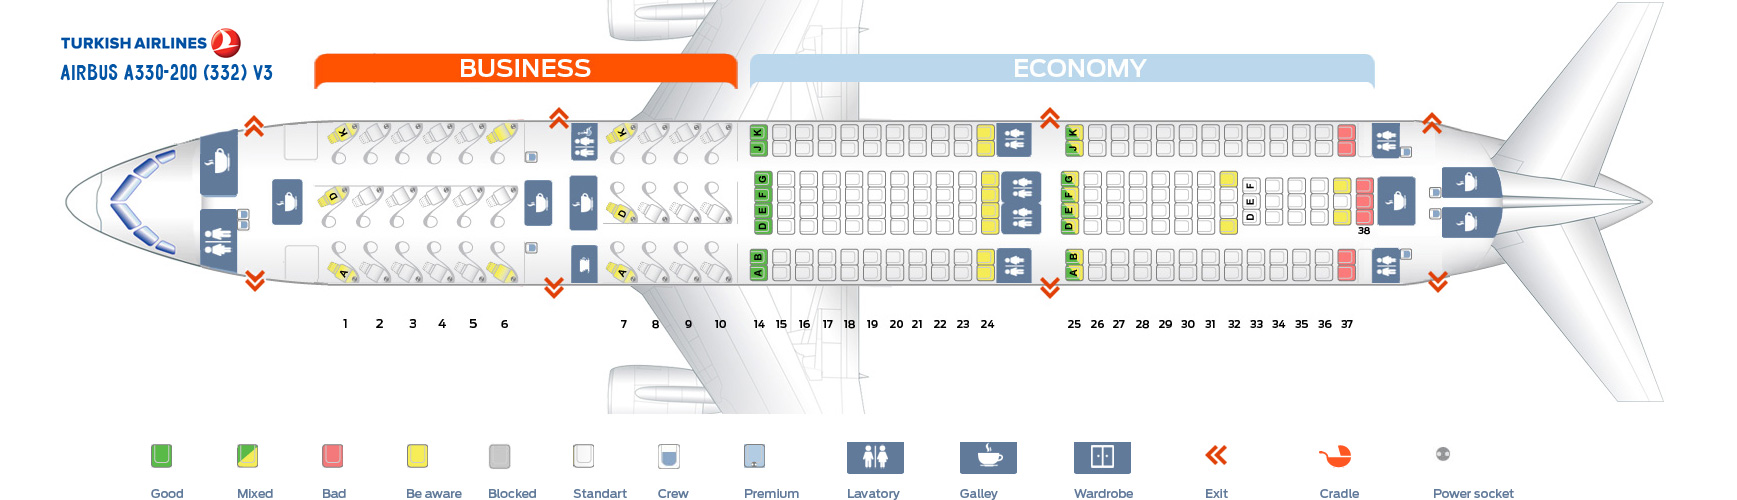 Seat Map Airbus A330-200 V3 Turkish Airlines